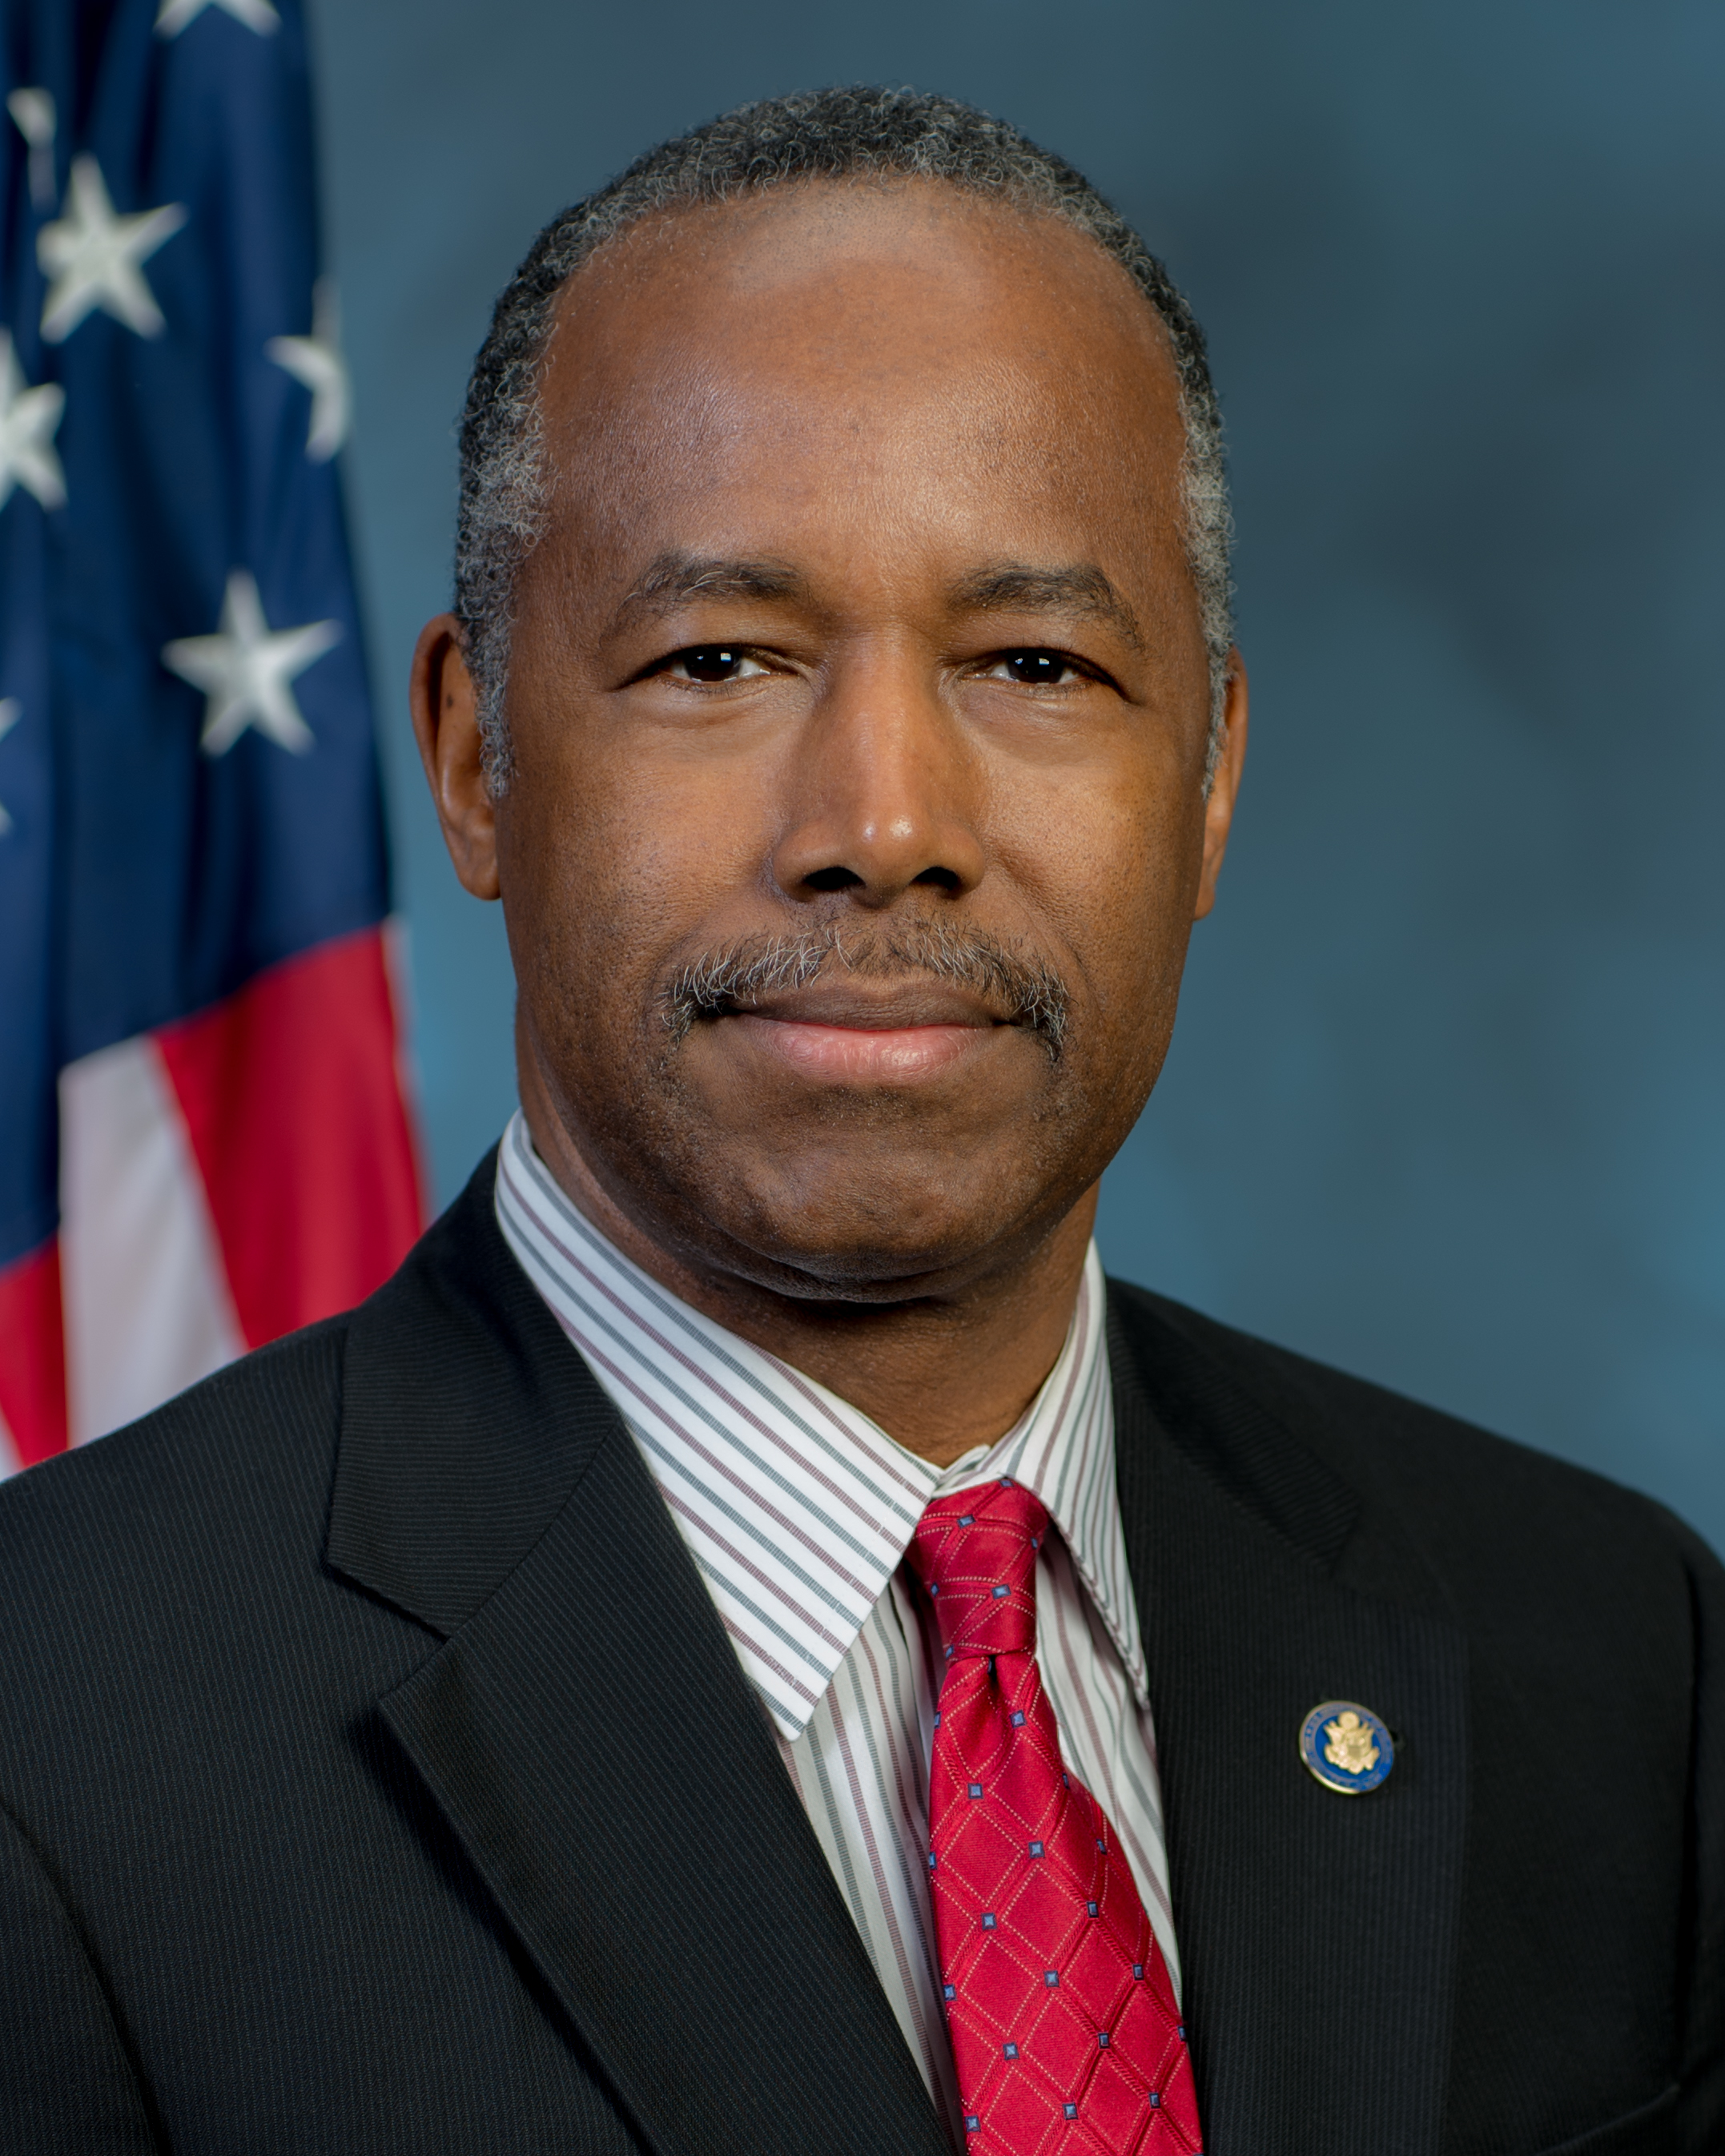 Honorable Dr. Benjamin S. Carson Sr. - A speaker at the City of Miami Opportunity Zone Summit